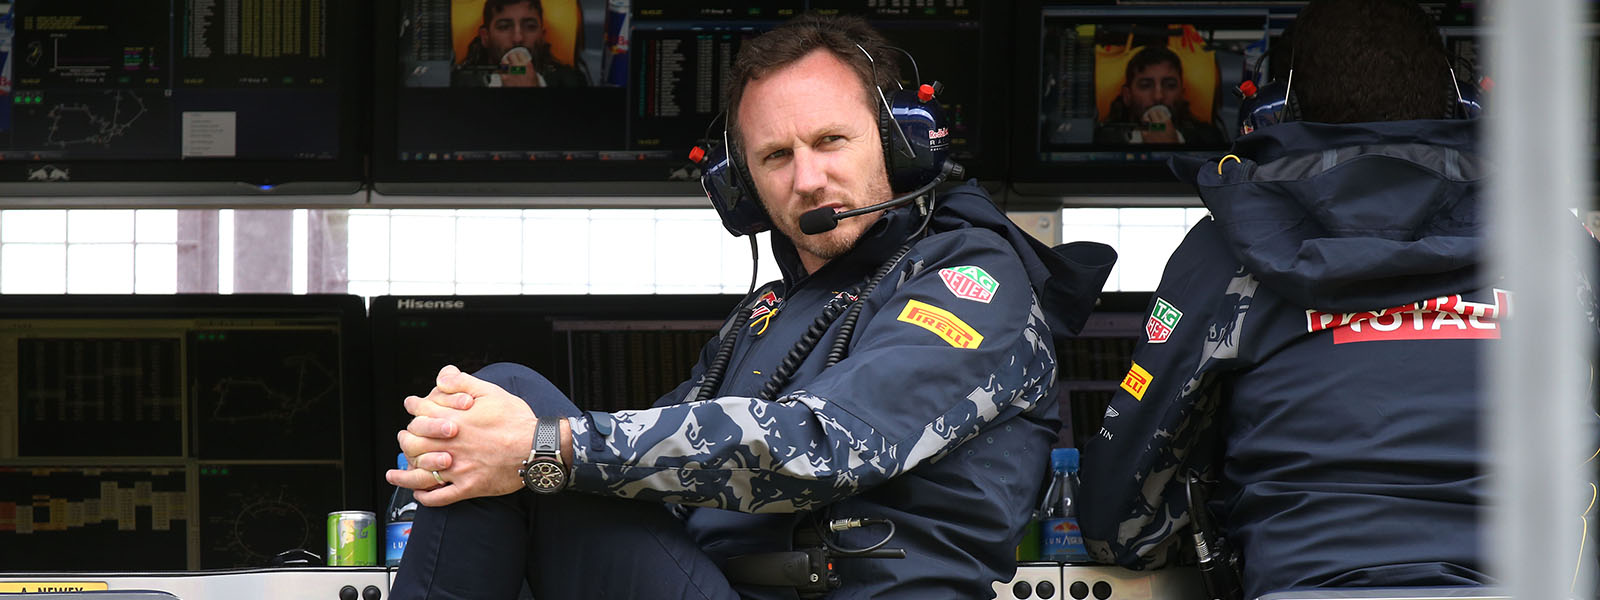 Motorsports: FIA Formula One World Championship 2016, Grand Prix of Great Britain,  Christian Horner (GBR, Red Bull Racing),  *** Local Caption *** +++ www.hoch-zwei.net +++ copyright: HOCH ZWEI +++